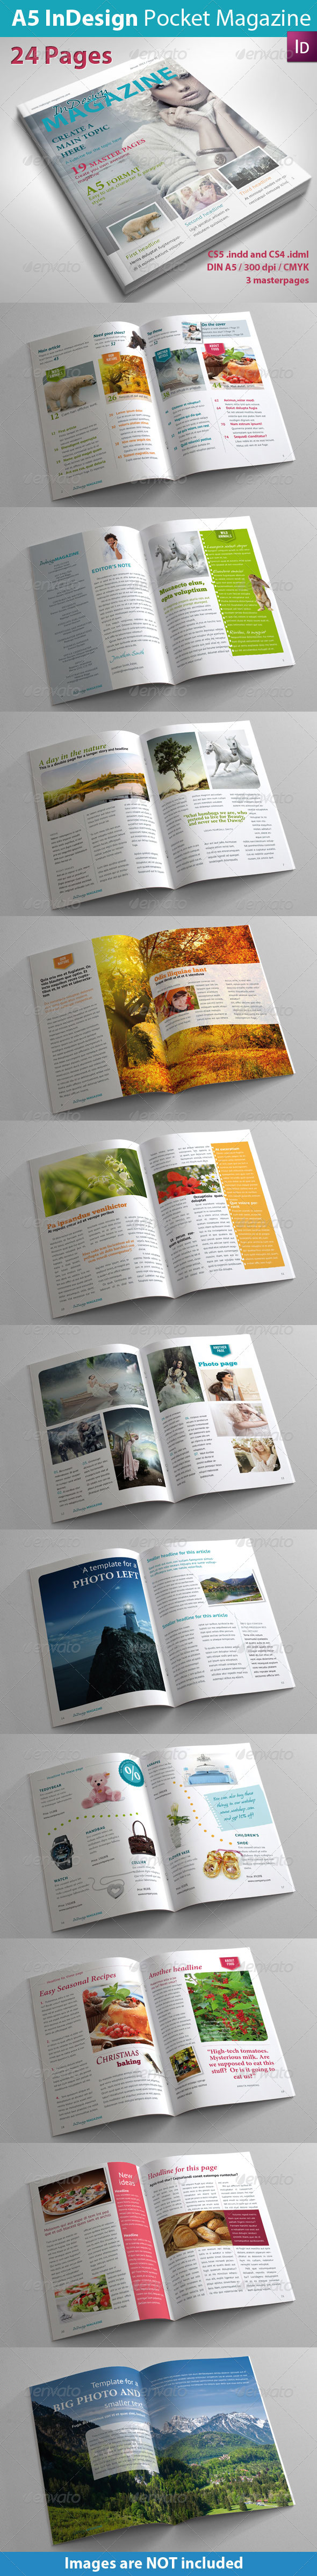 GraphicRiver A5 InDesign Magazine 3665470